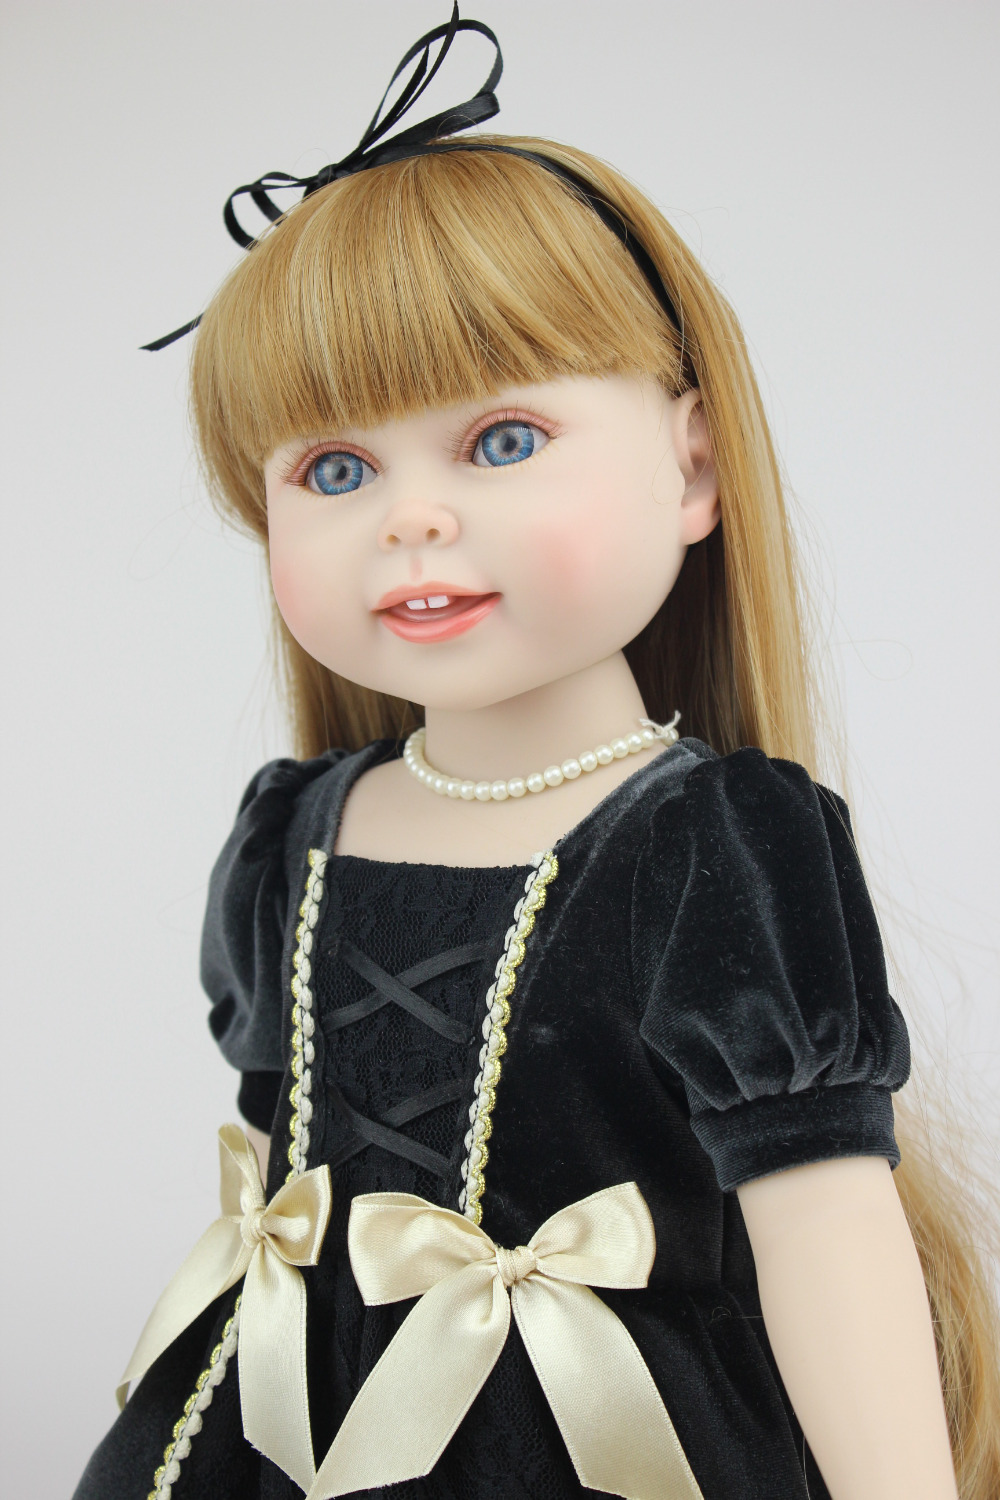 New Silicone Vinyl Doll Reborn Babies 45cm Dolls for America Girl Toys  Lifelike Newborn Baby Bonecas Best Gift For Kids Child new 35cm silicone vinyl doll reborn baby dolls girl toys soft body lifelike newborn babies bonecas toy best gift for kid child